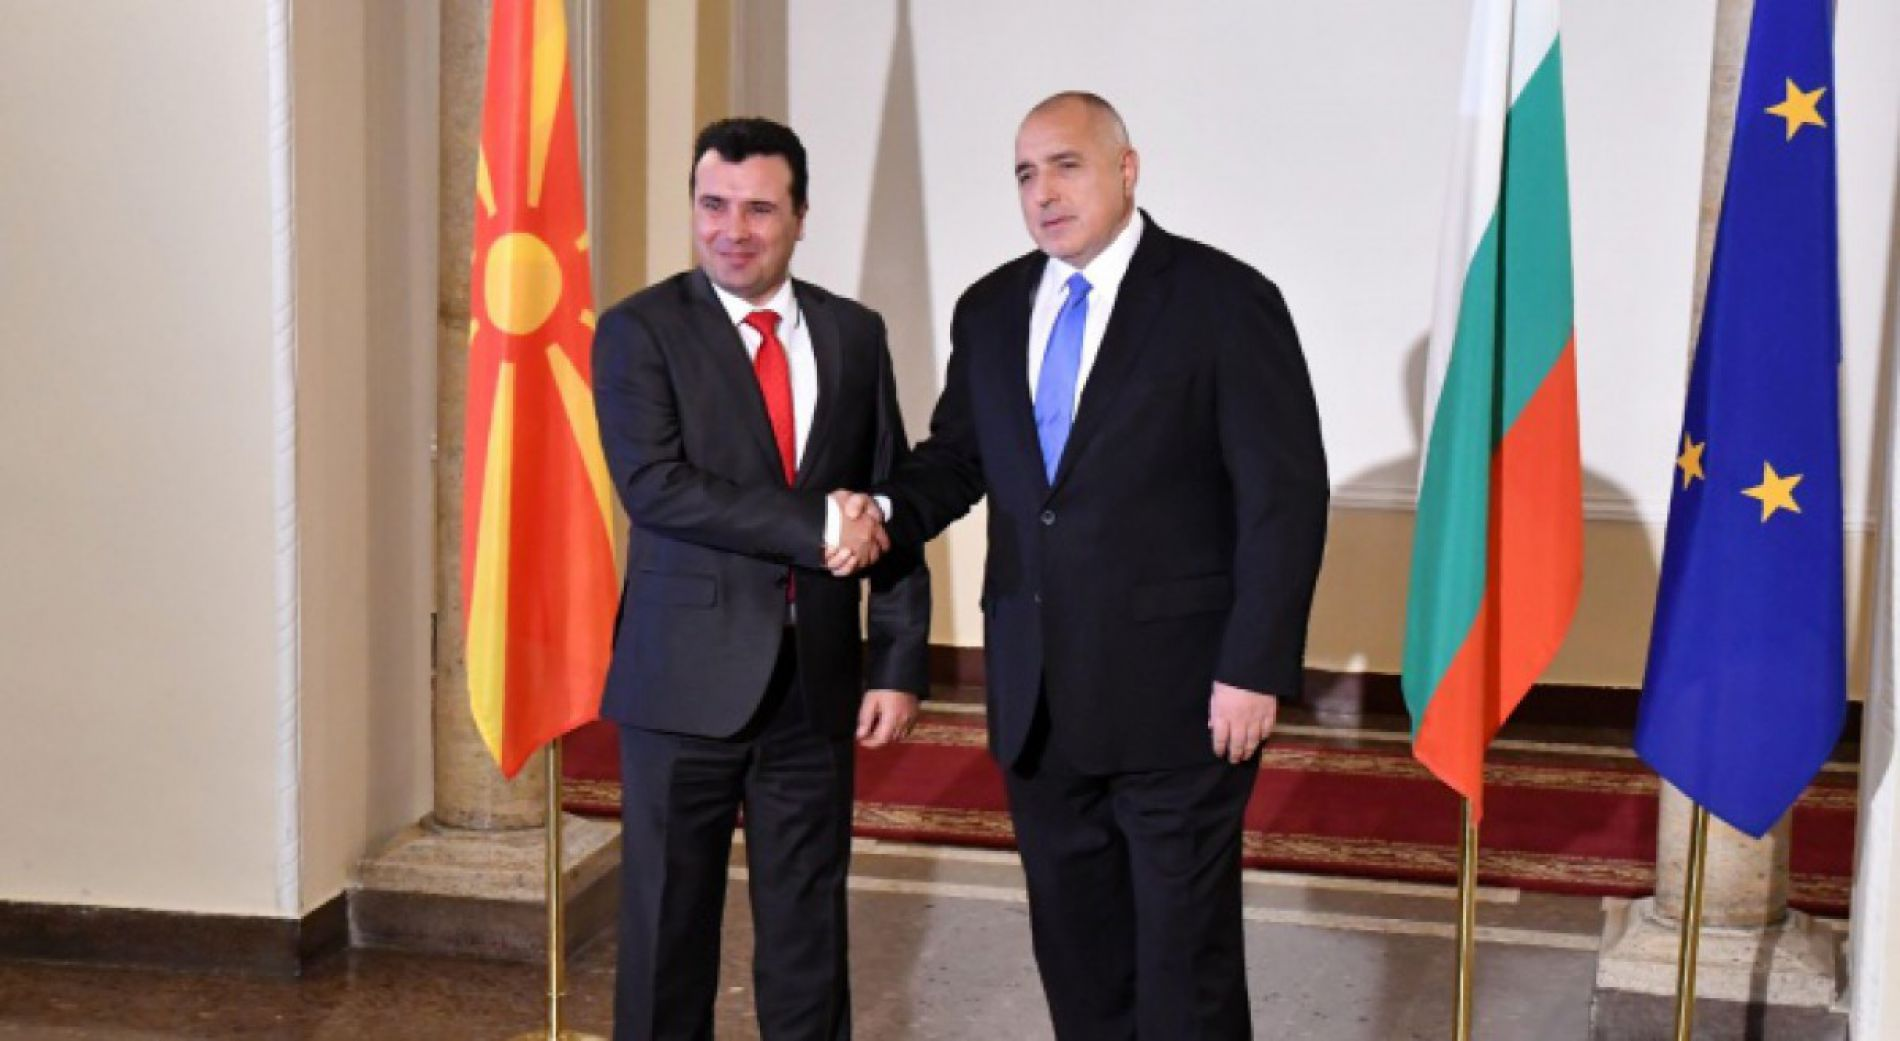 Bulgaria and Northern Macedonia Preside over the Berlin Process